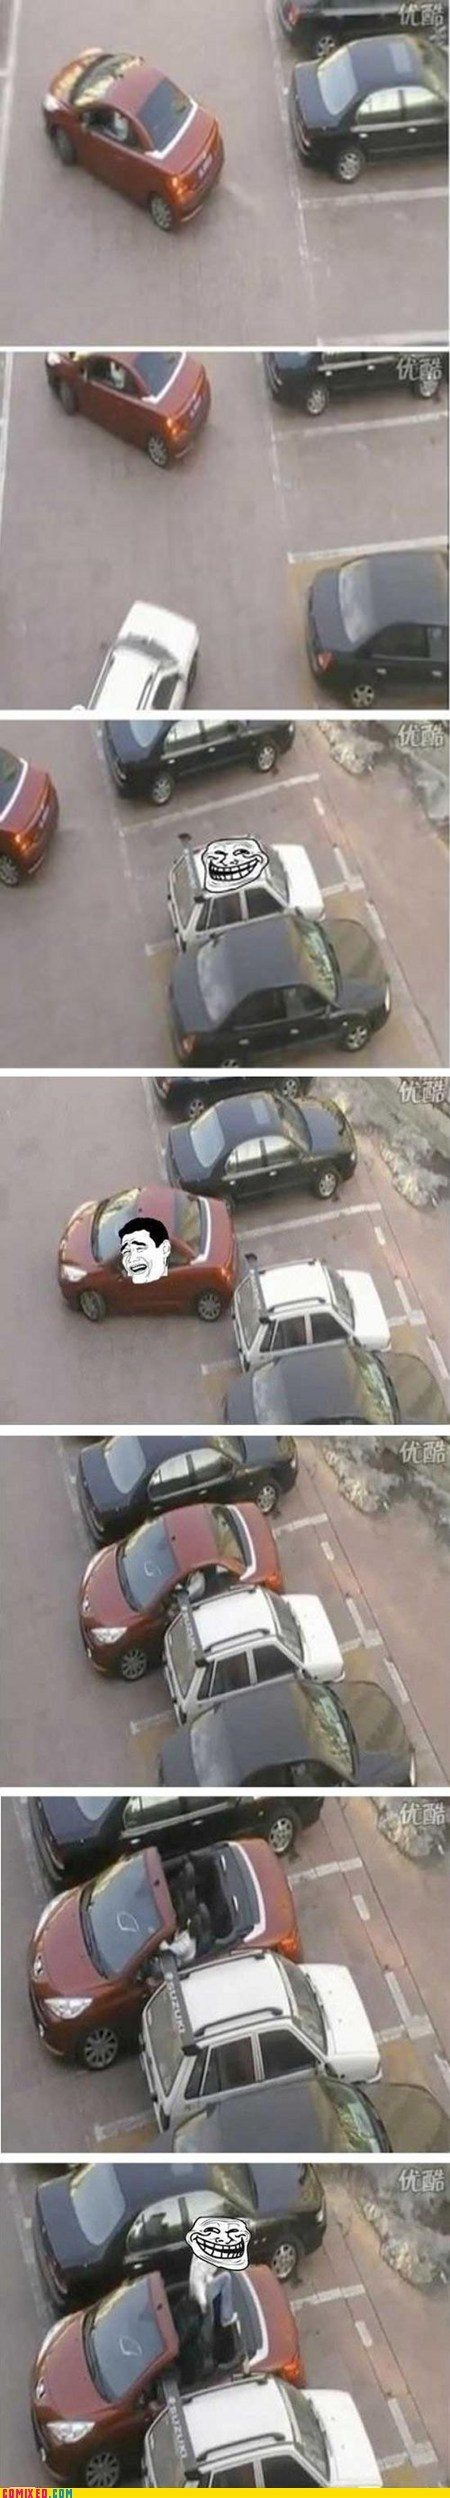 best of week car jerk move parking Sweet Justice the internets troll